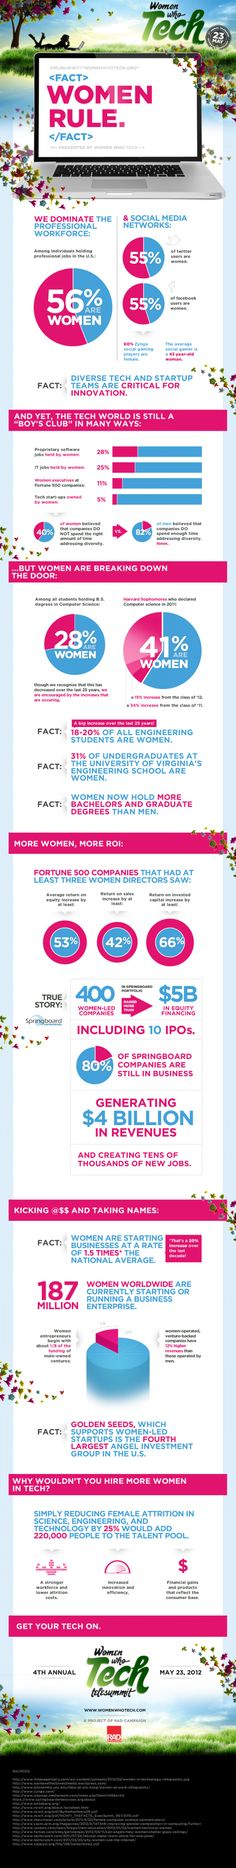 It may come as a surprise that over fifty five per cent of the users on Facebook and Twitter are female, while sixty per cent of the players using the social games developed by Zynga are also women! #infographic #women #socialmedia